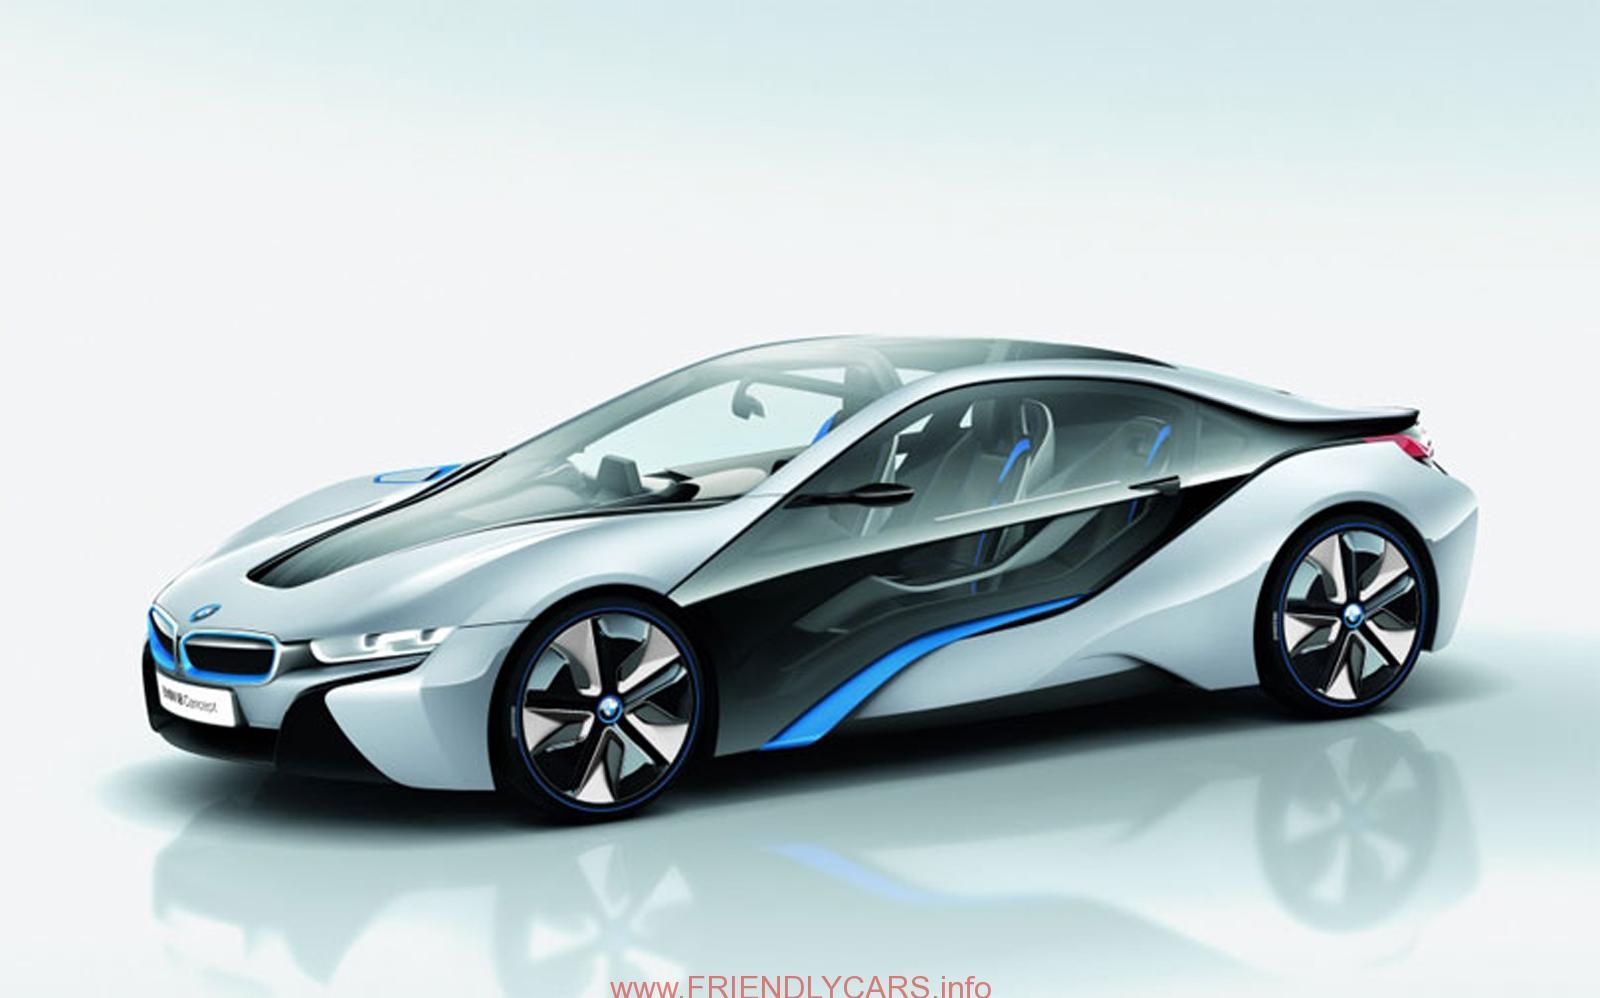 Awesome Bmw I8 Blue Wallpaper Car Images Hd BMW WALLPAPER 33 144554 HD Wallpapers Wallfoy